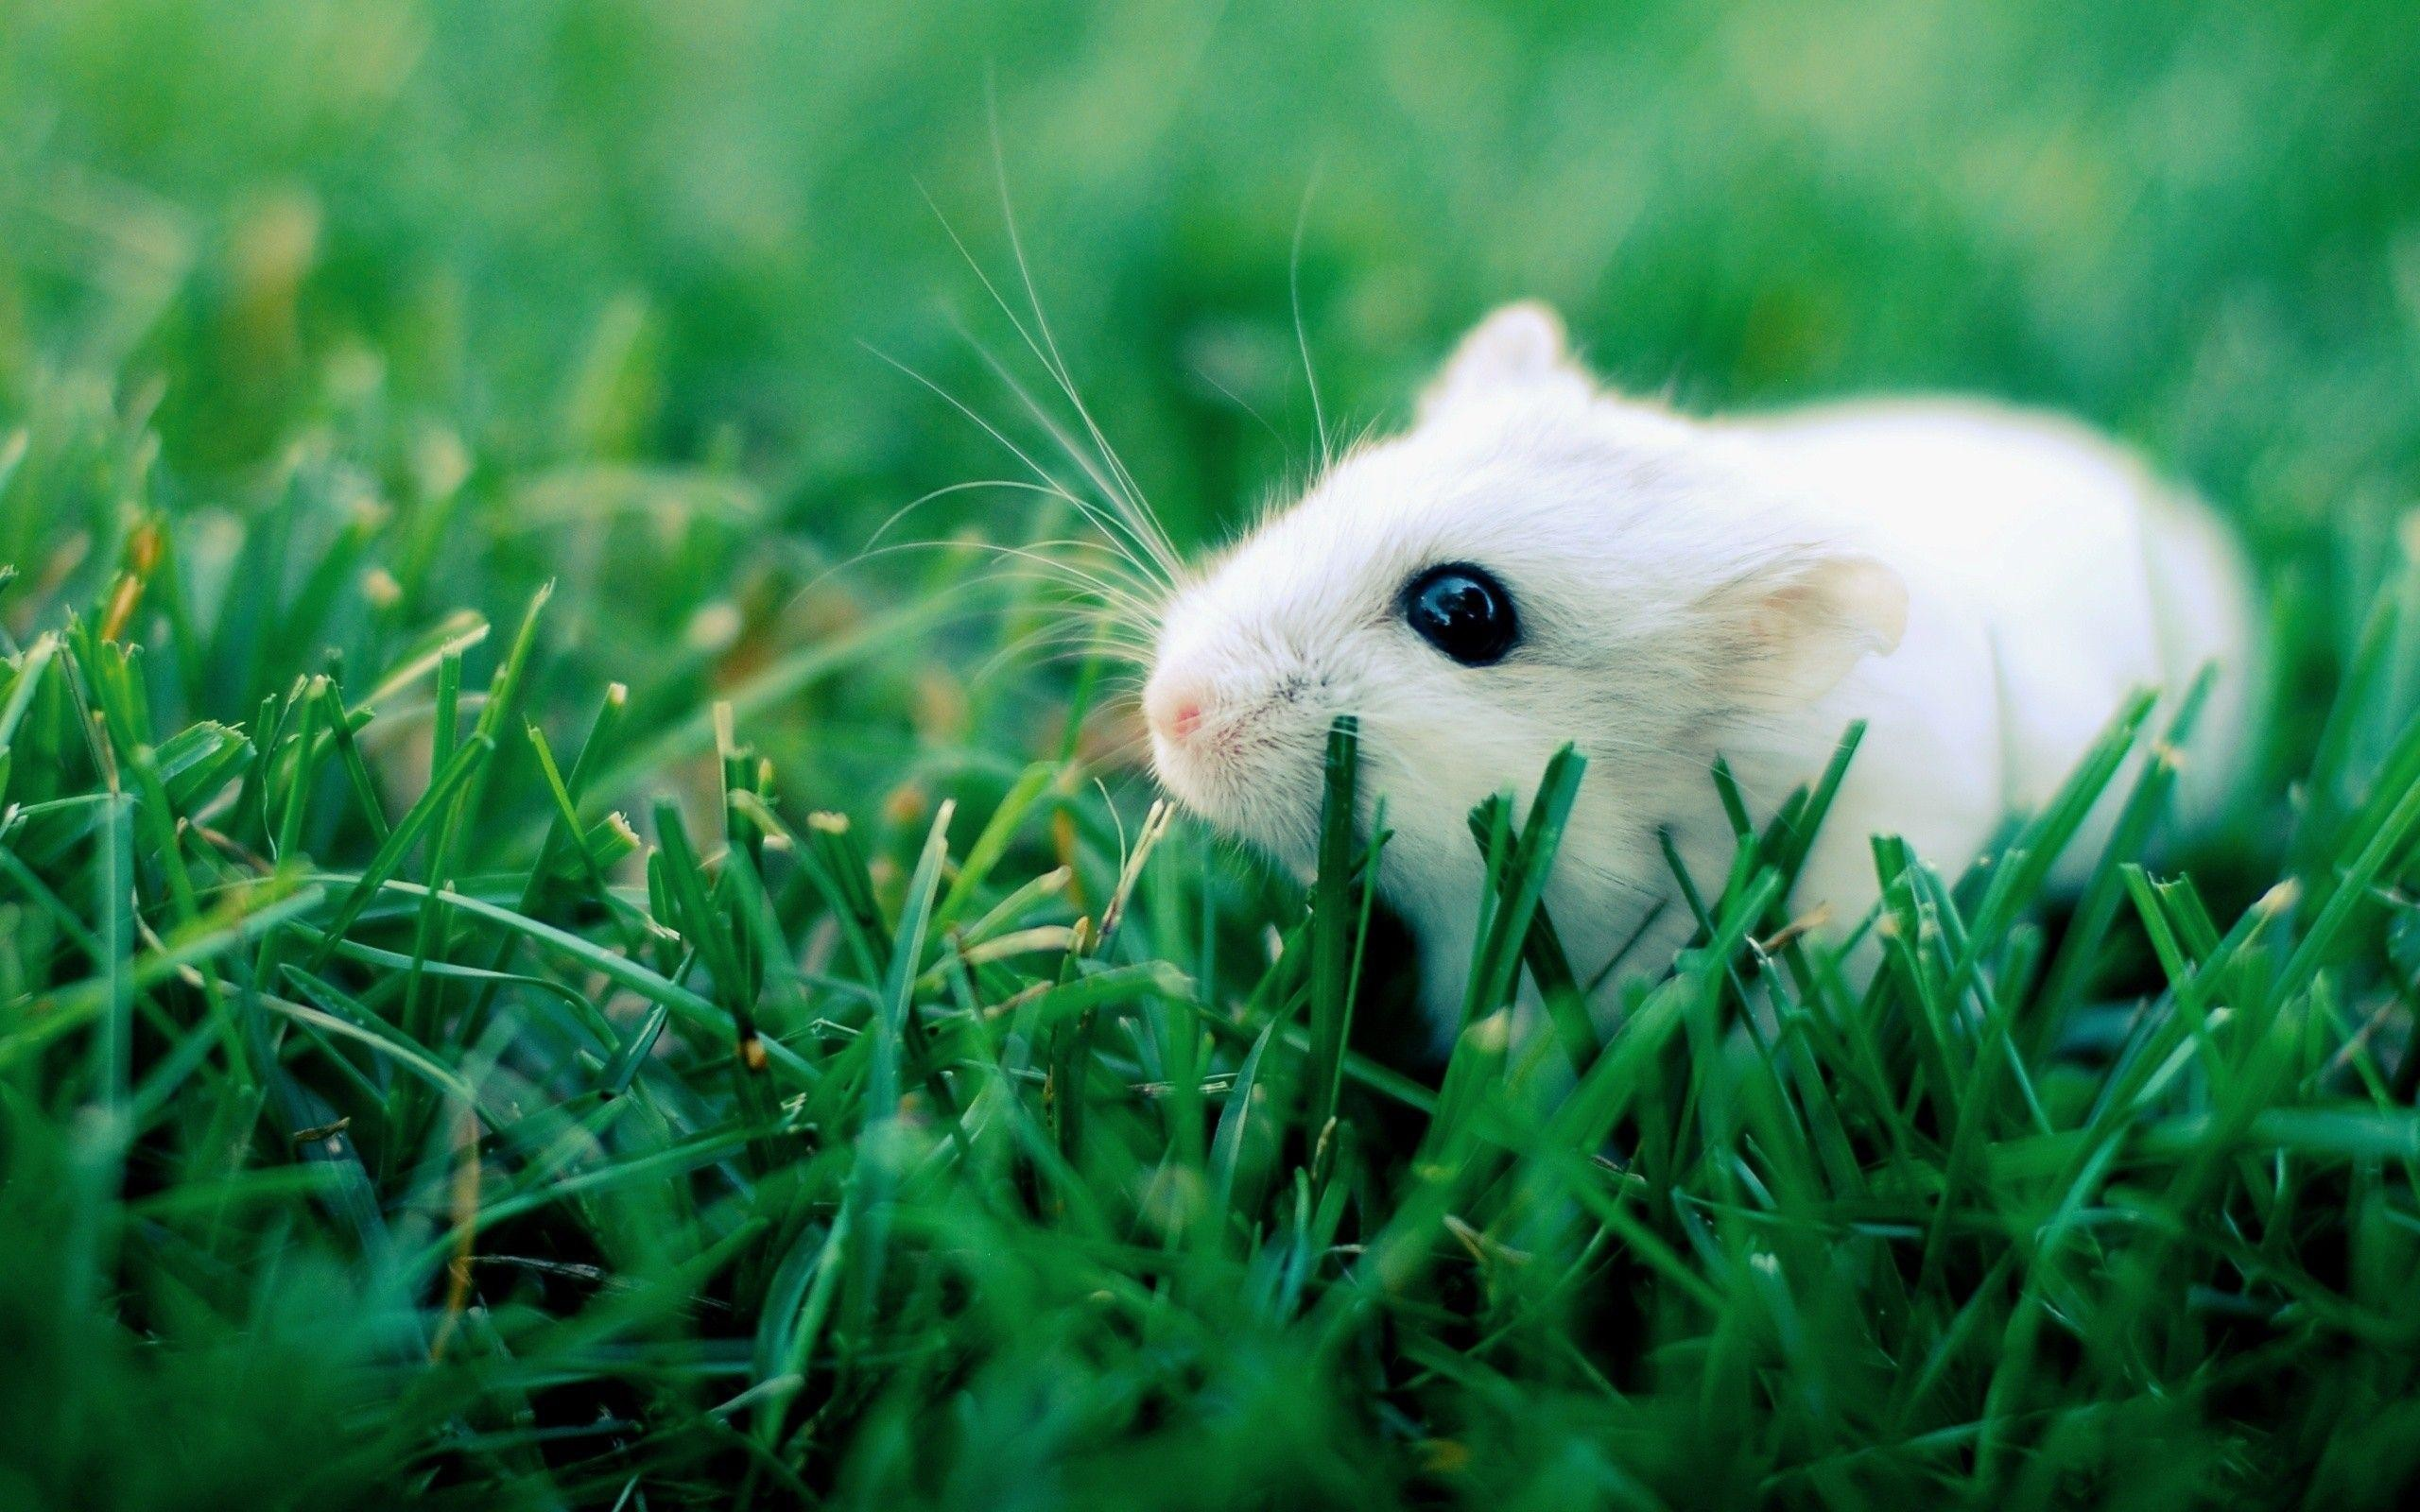 Hamster Background Images HD Wallpapers 2560x1600